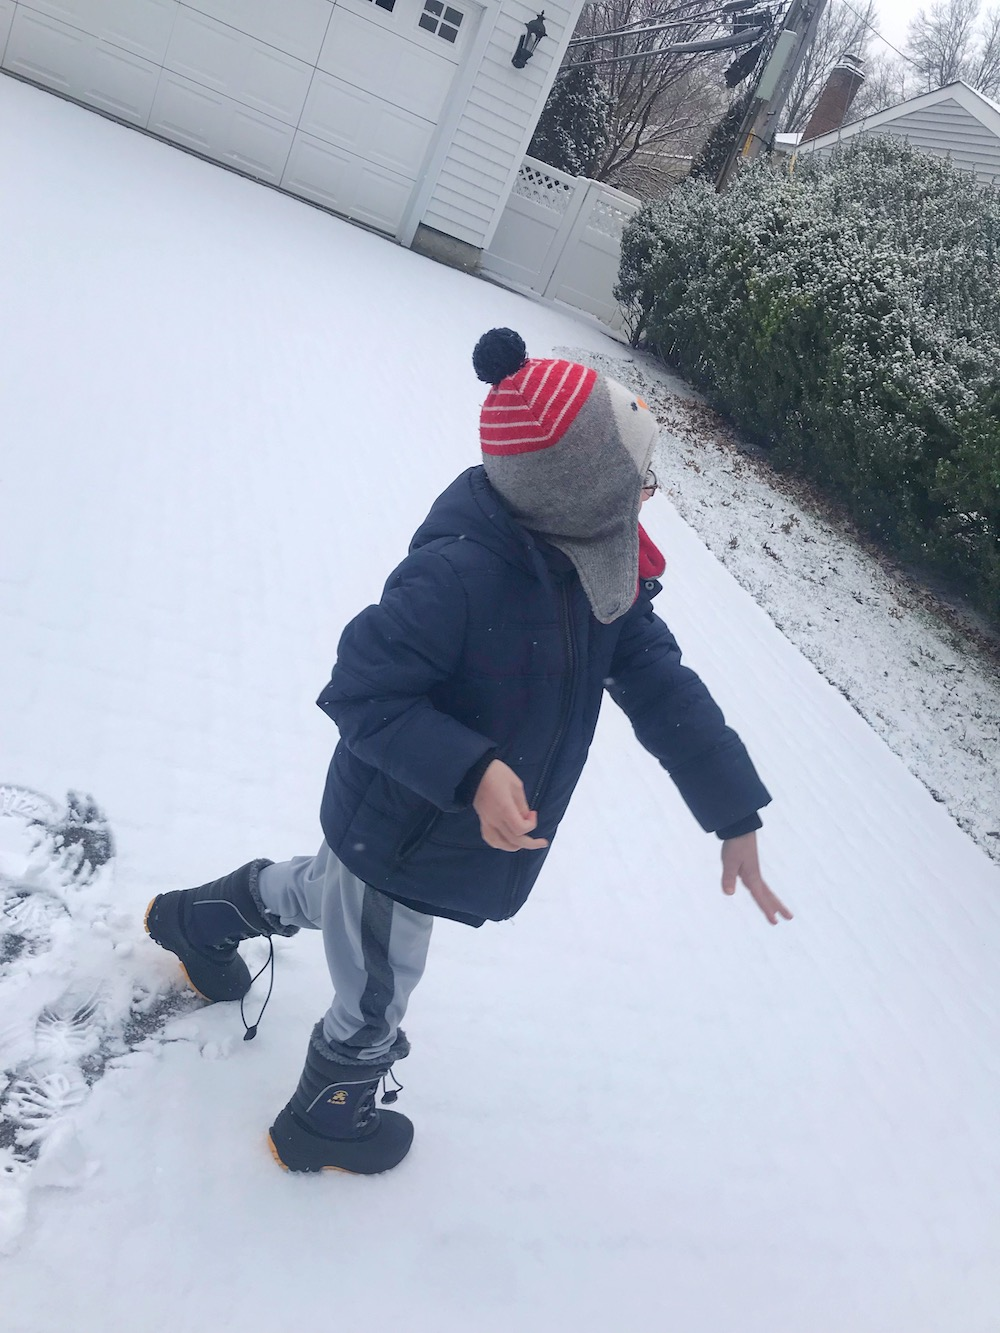 Kamik boots - boy throwing snowball 2